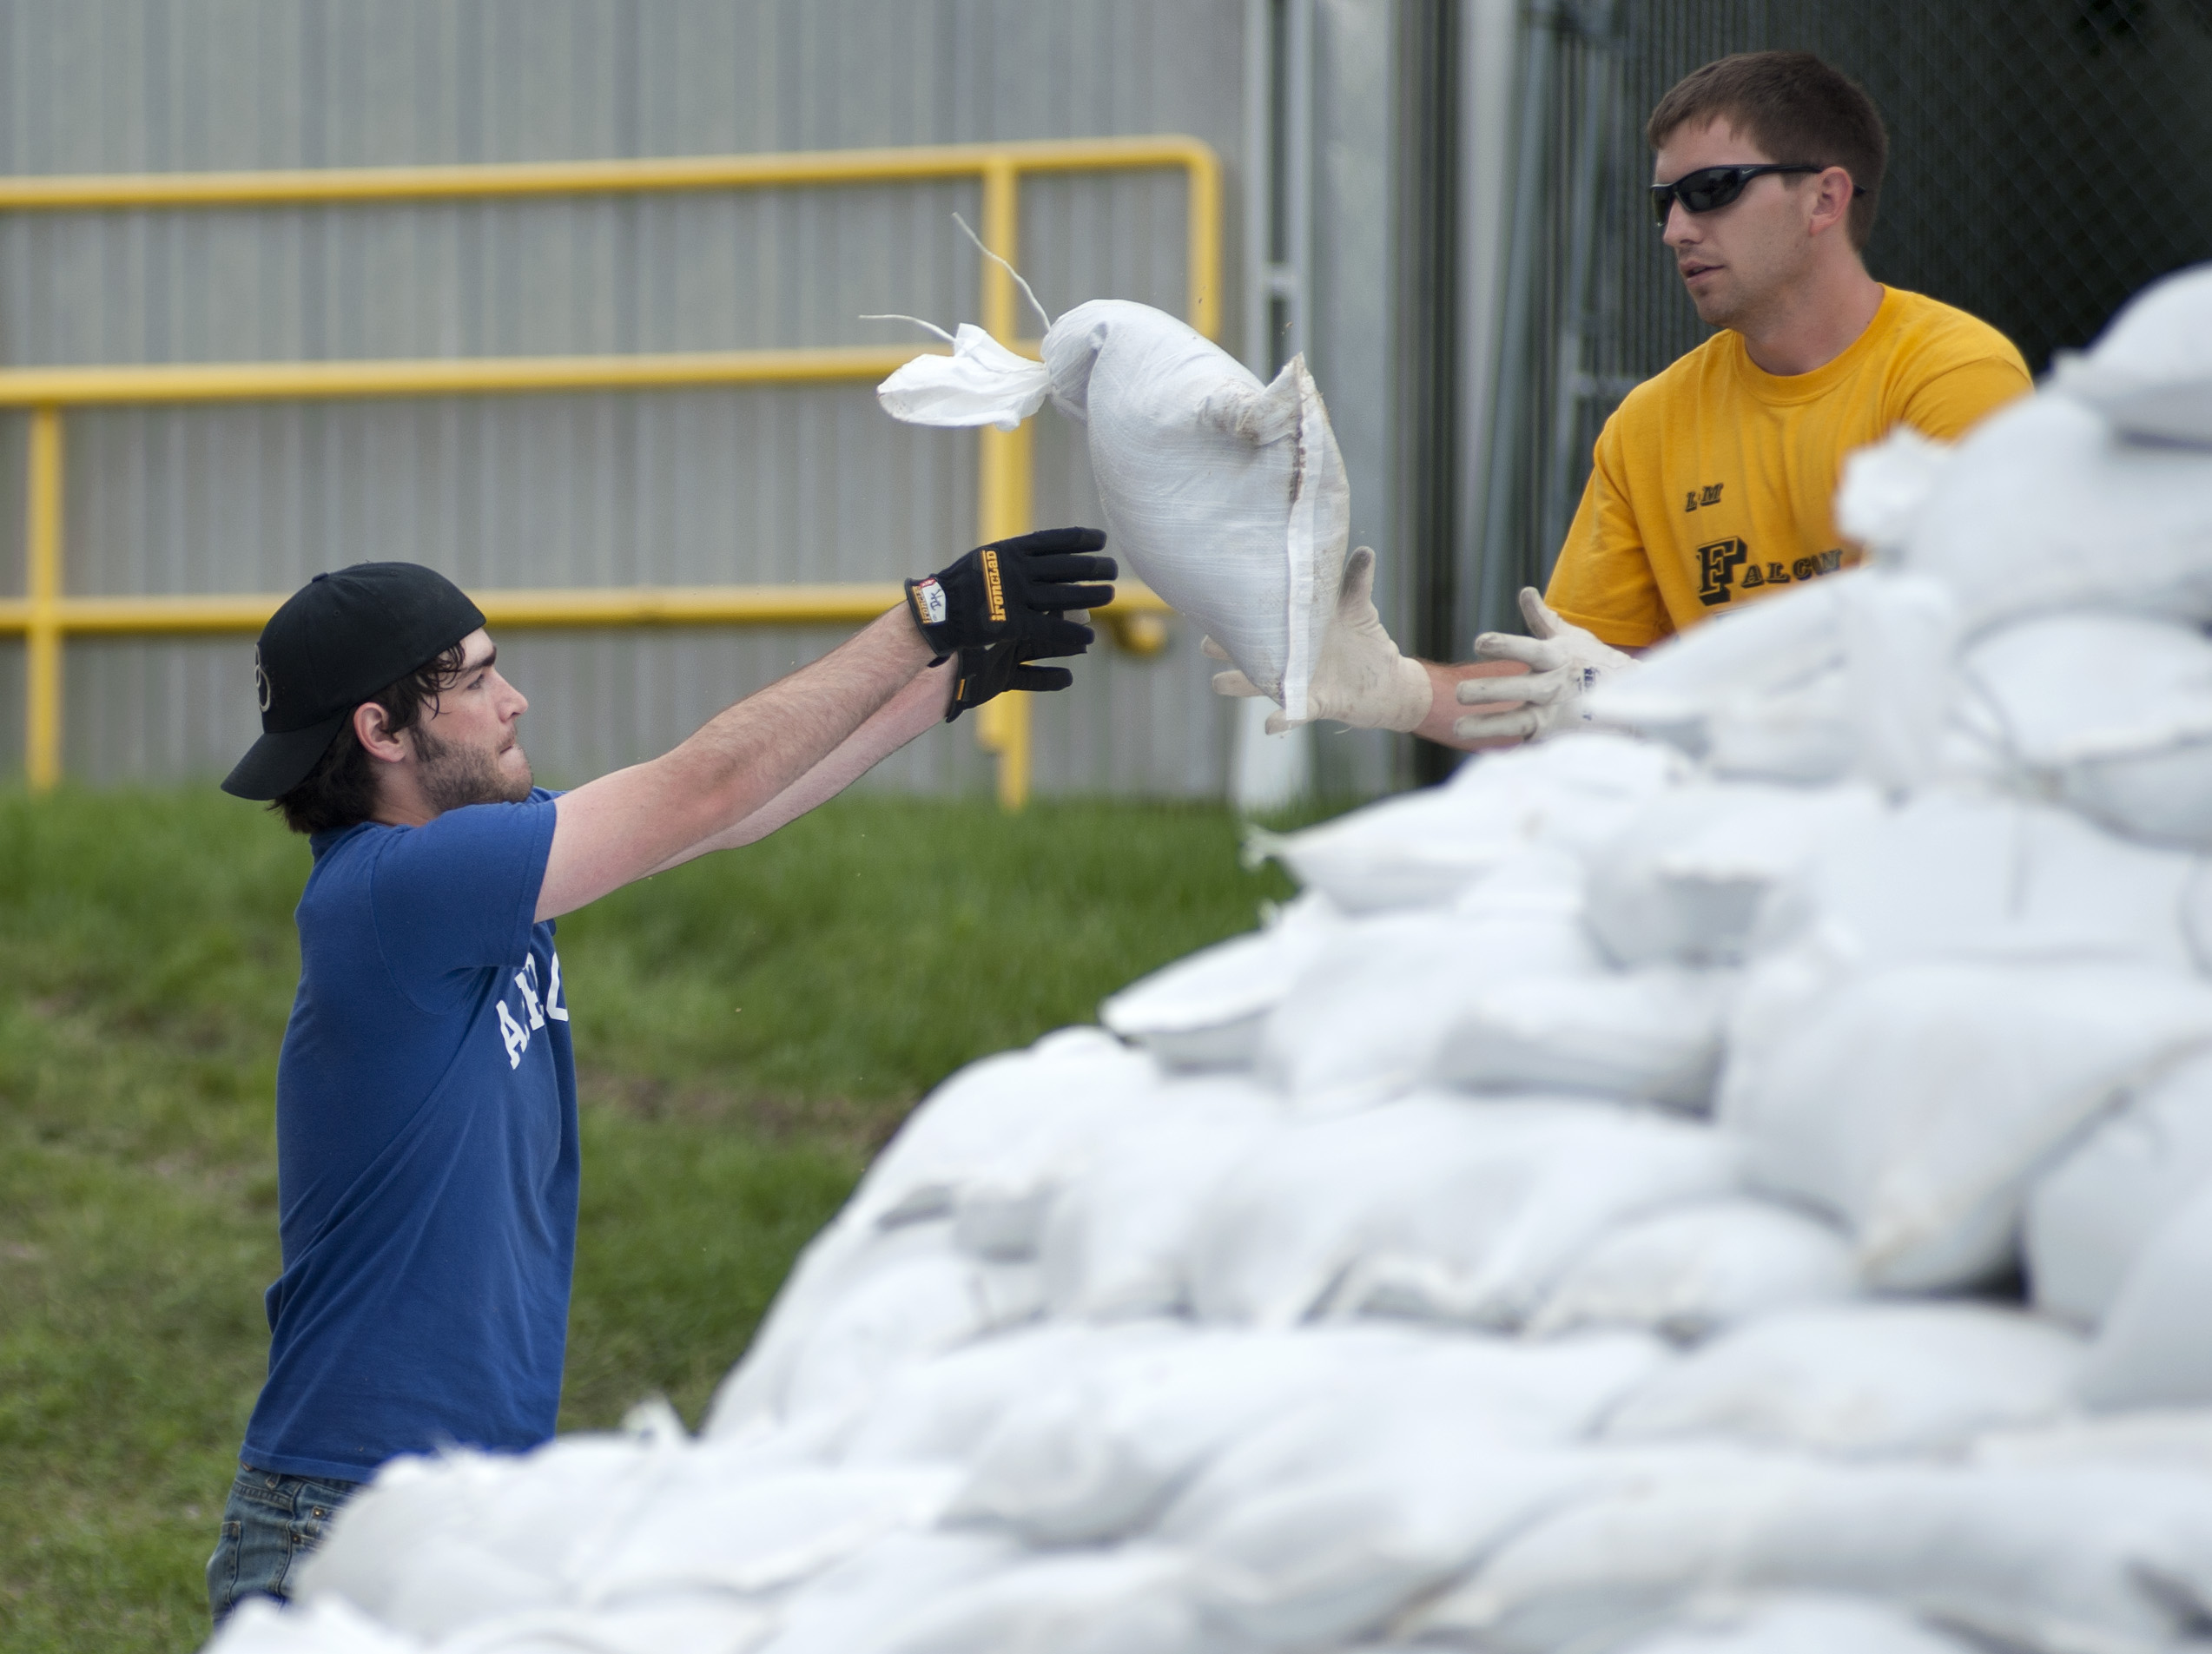 Students from across campus, including IIHR, have volunteered to help protect UI buildings by filling and stacking sandbags.